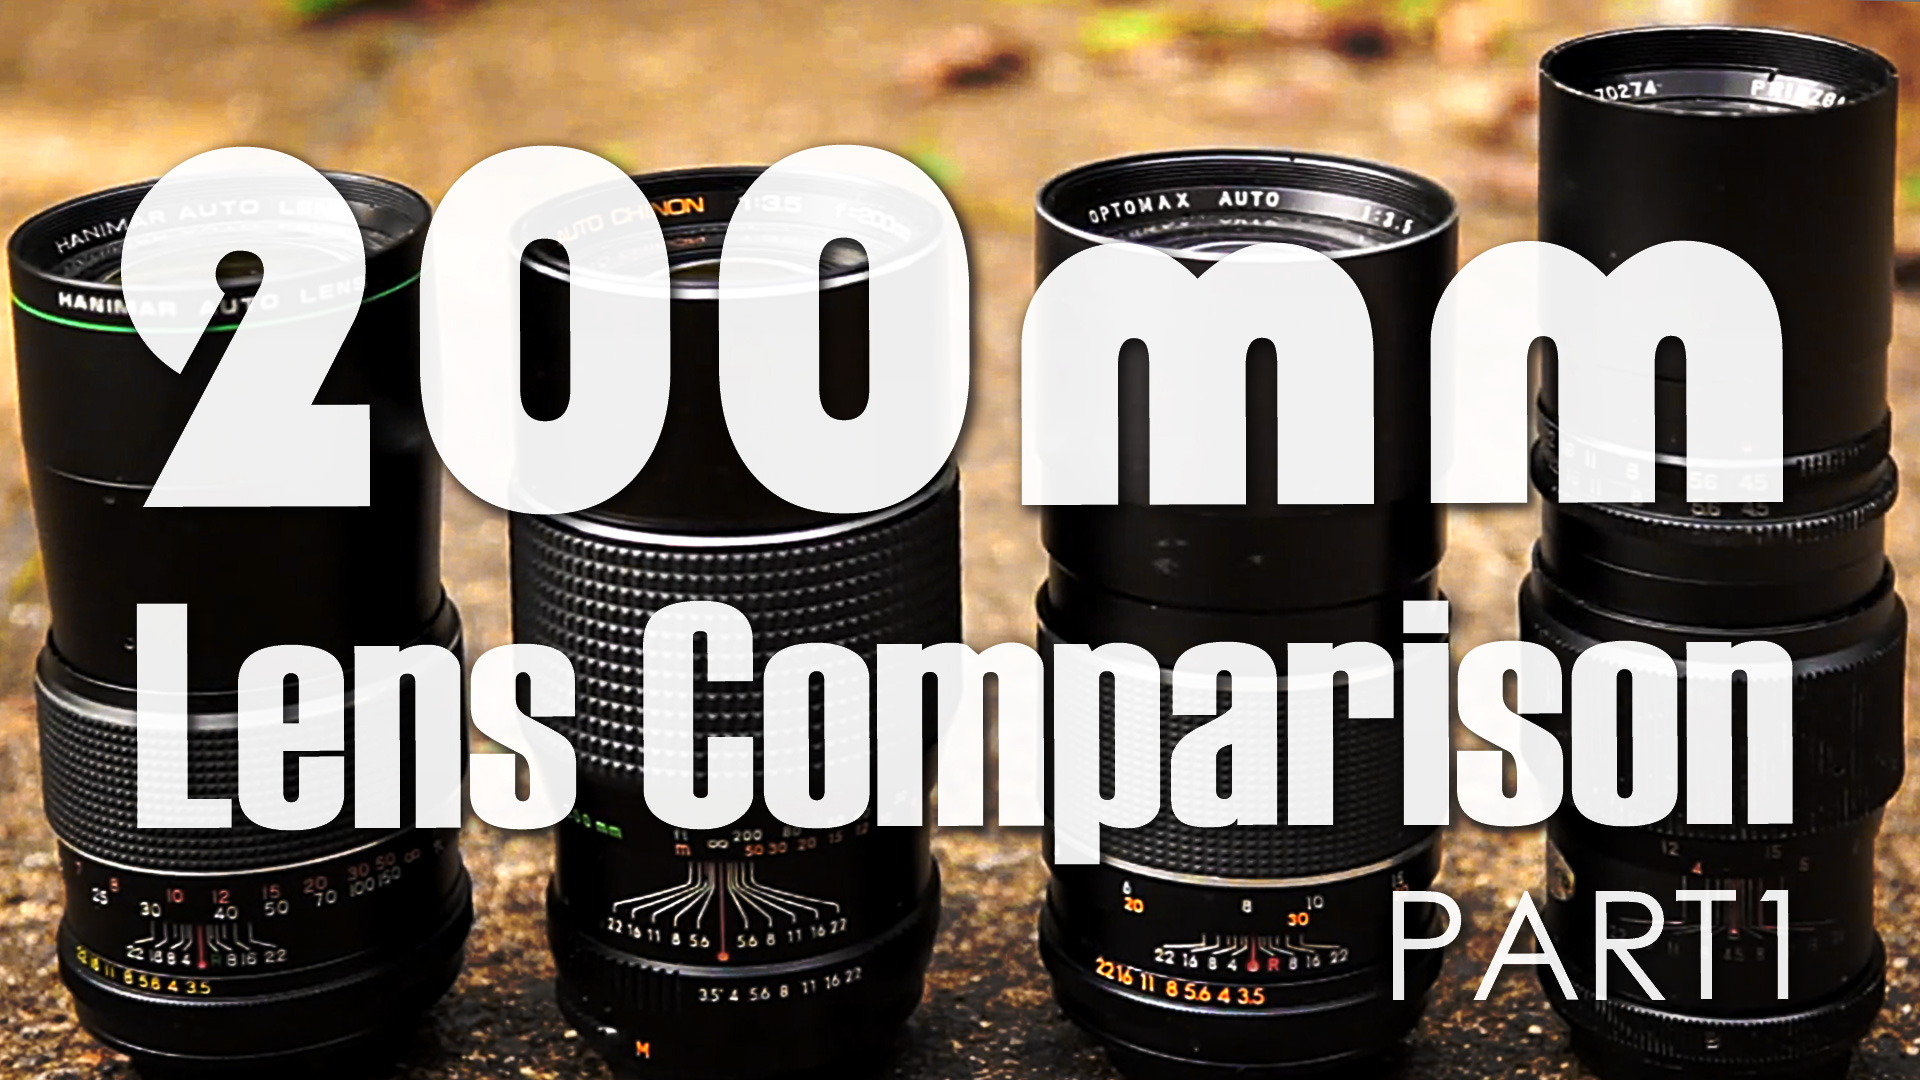 200mm Lens Test & Overview. Part 1 (Hanimar, Chinon, Optimax, Prinzgalaxy)